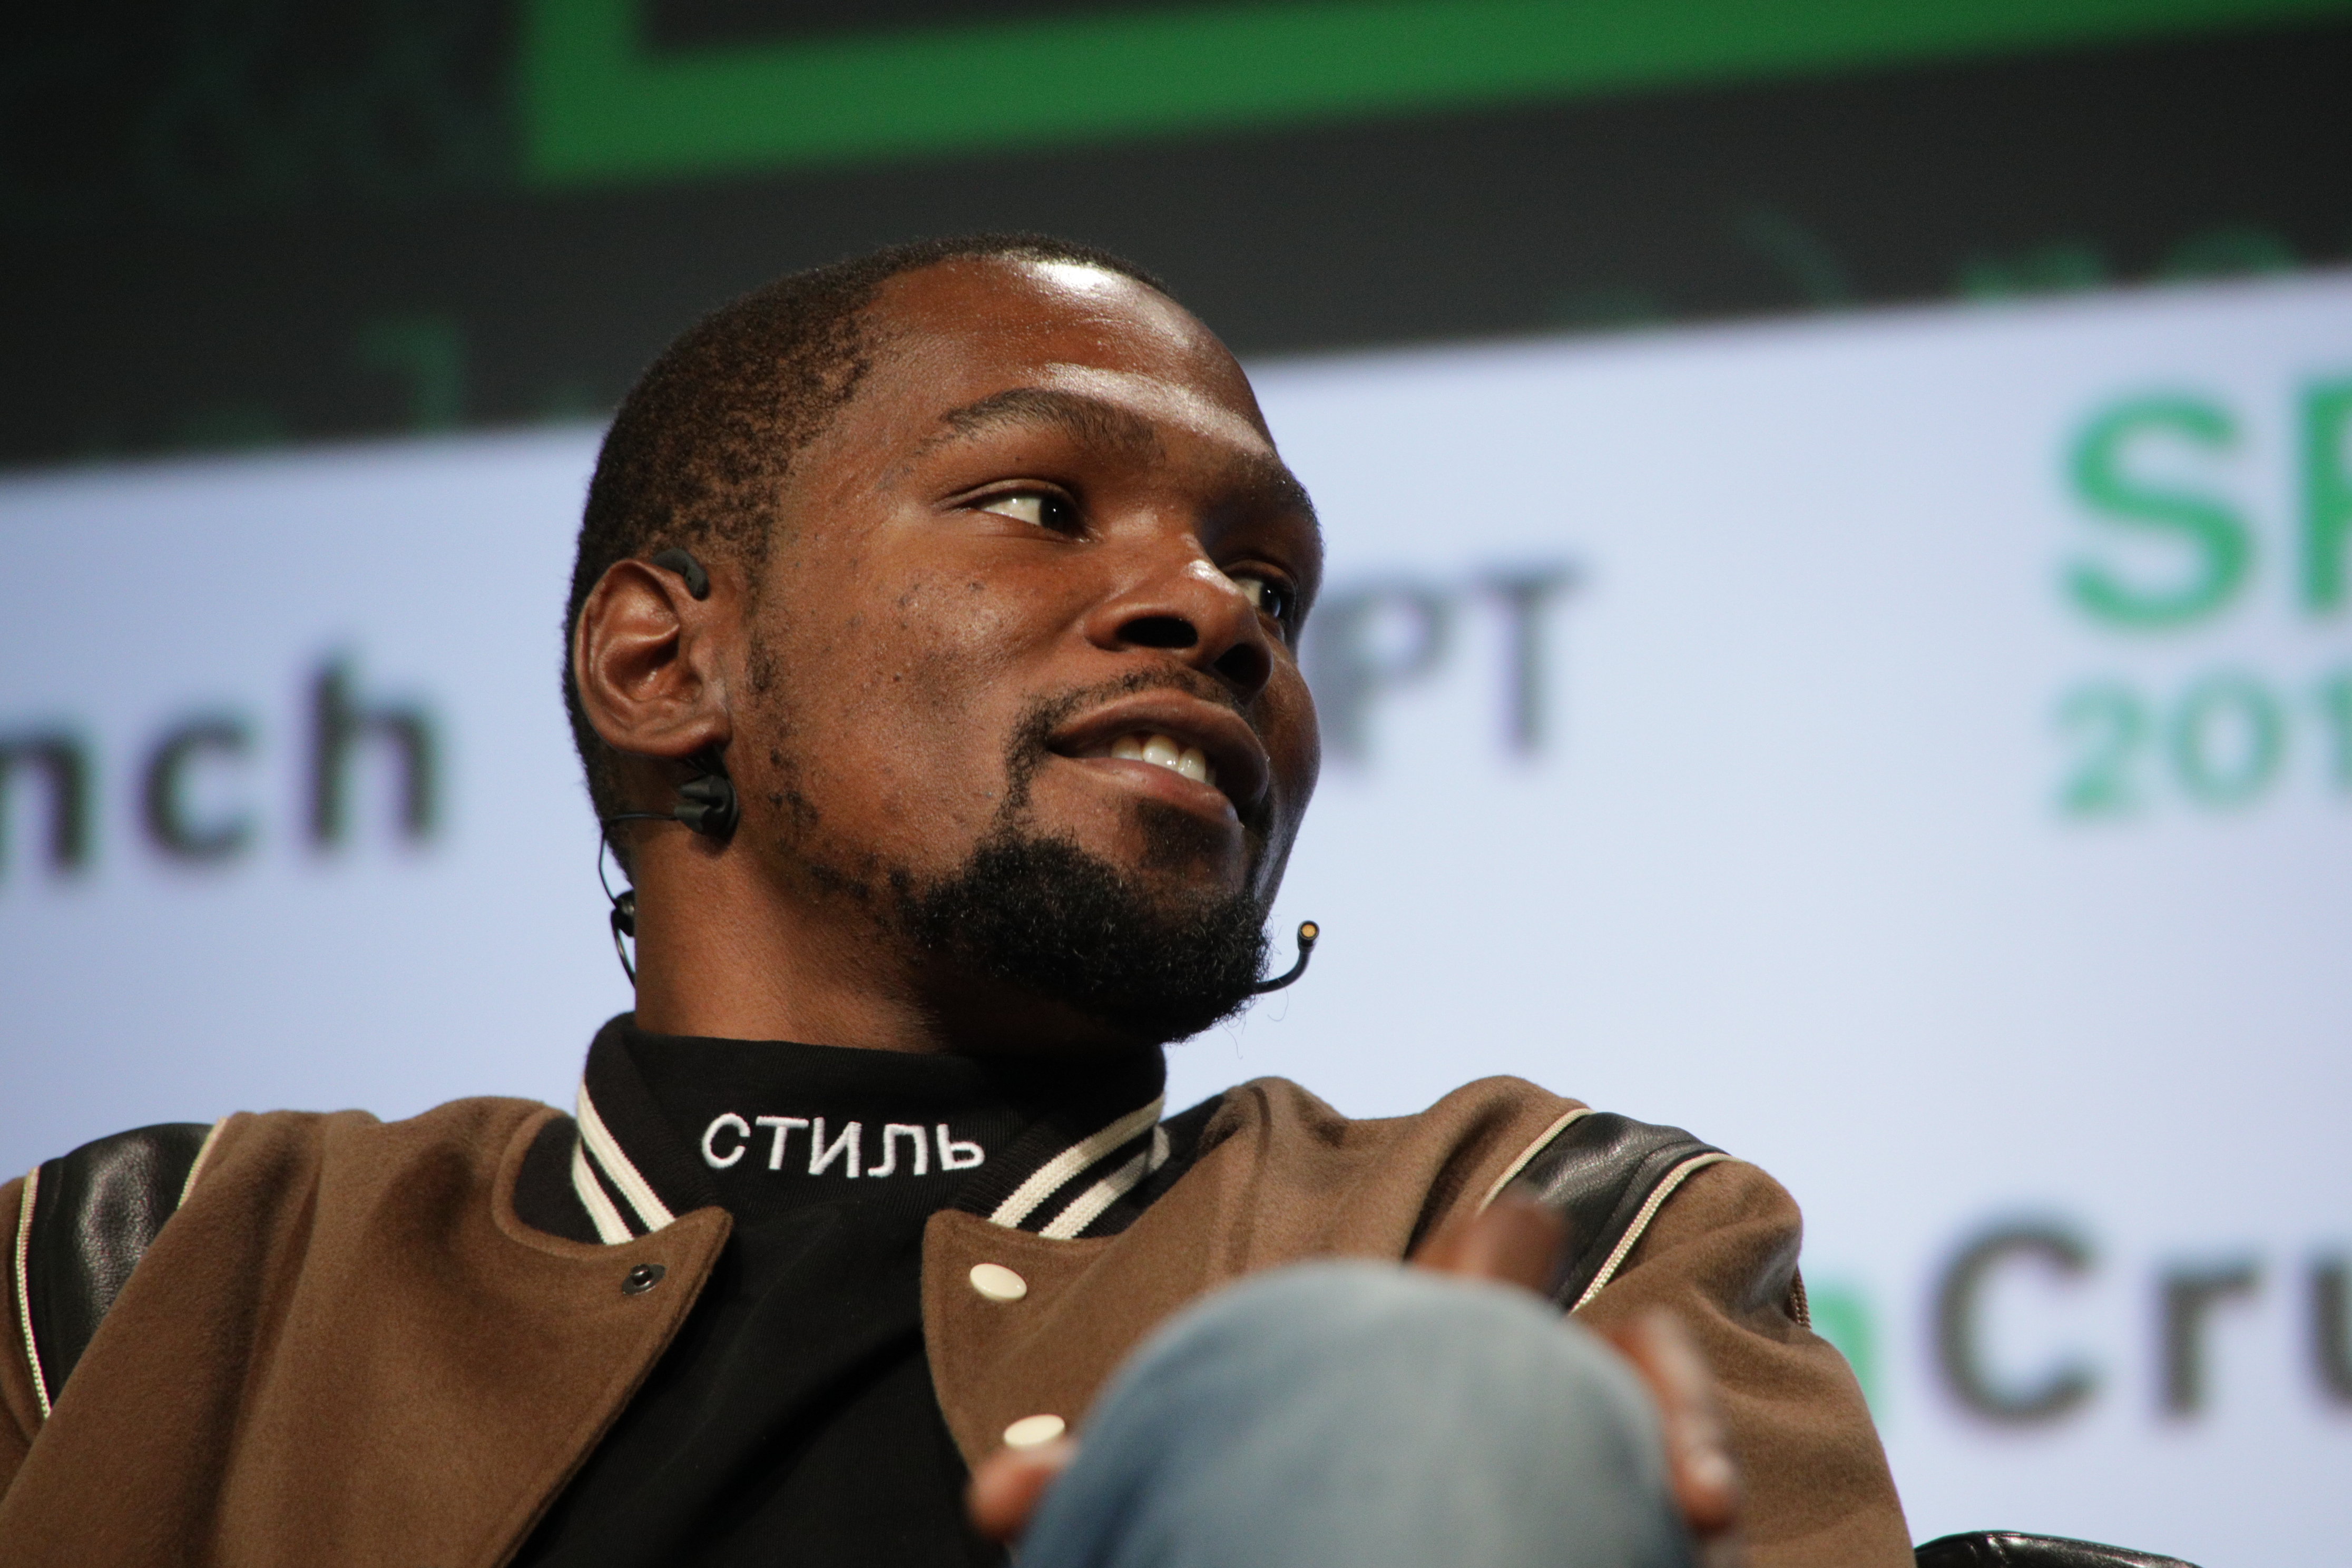 Kevin Durant explains his Twitter meltdown